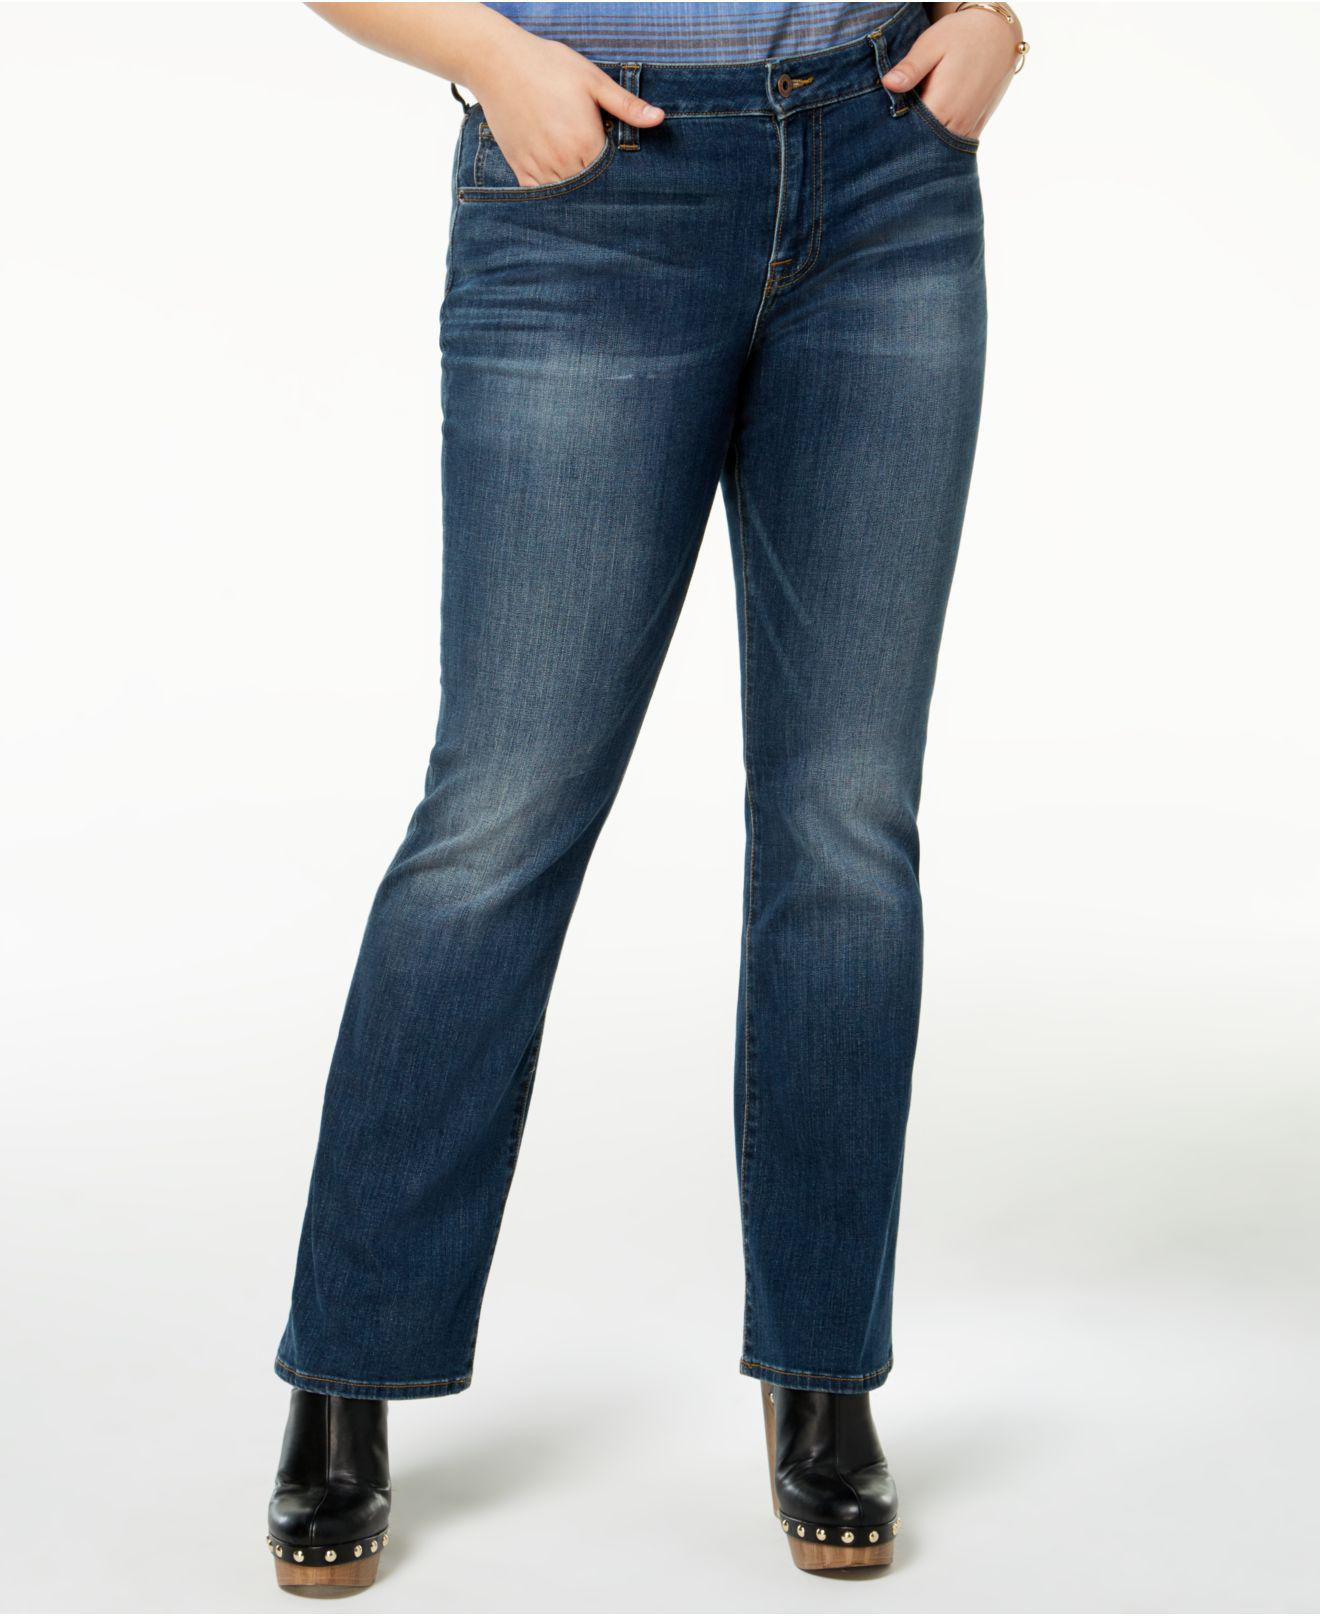 7f7ece01eb3 Lyst - Lucky Brand Trendy Plus Size   Petite Plus Ginger Bootcut ...